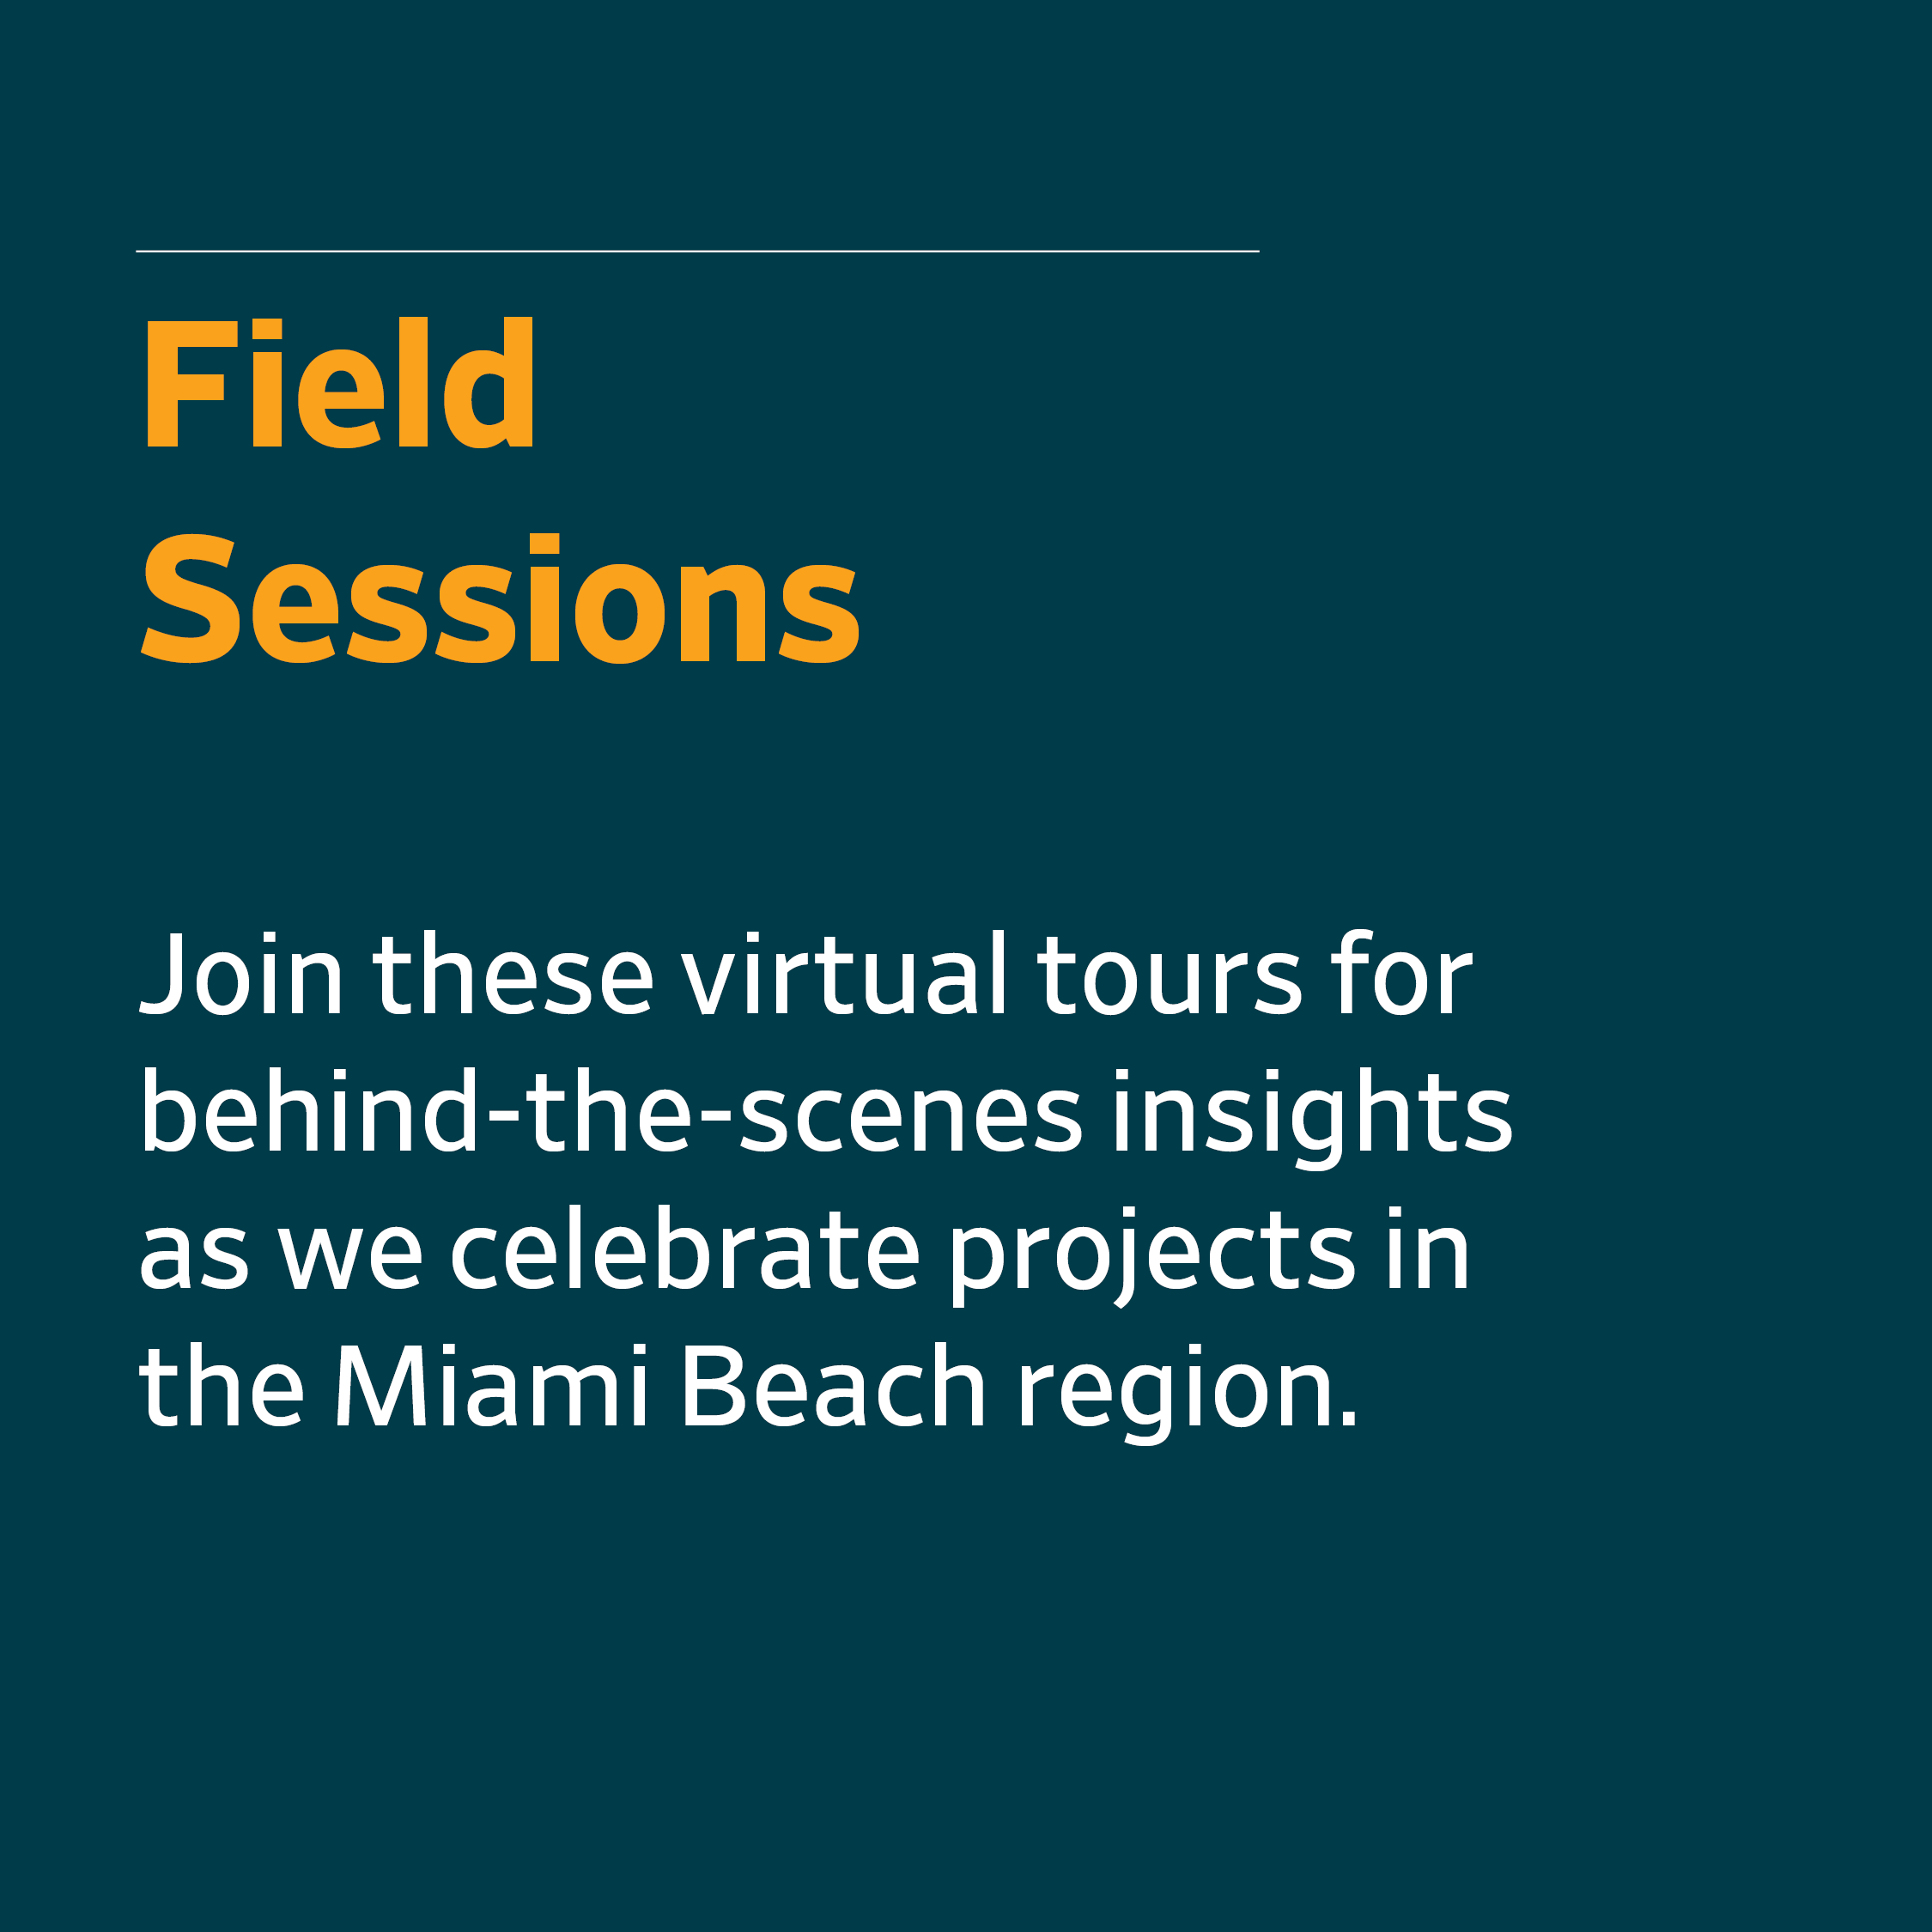 Field Sessions - Join these virtual tours for behind-the-scenes insights as we celebrate projects in the Miami Beach region.